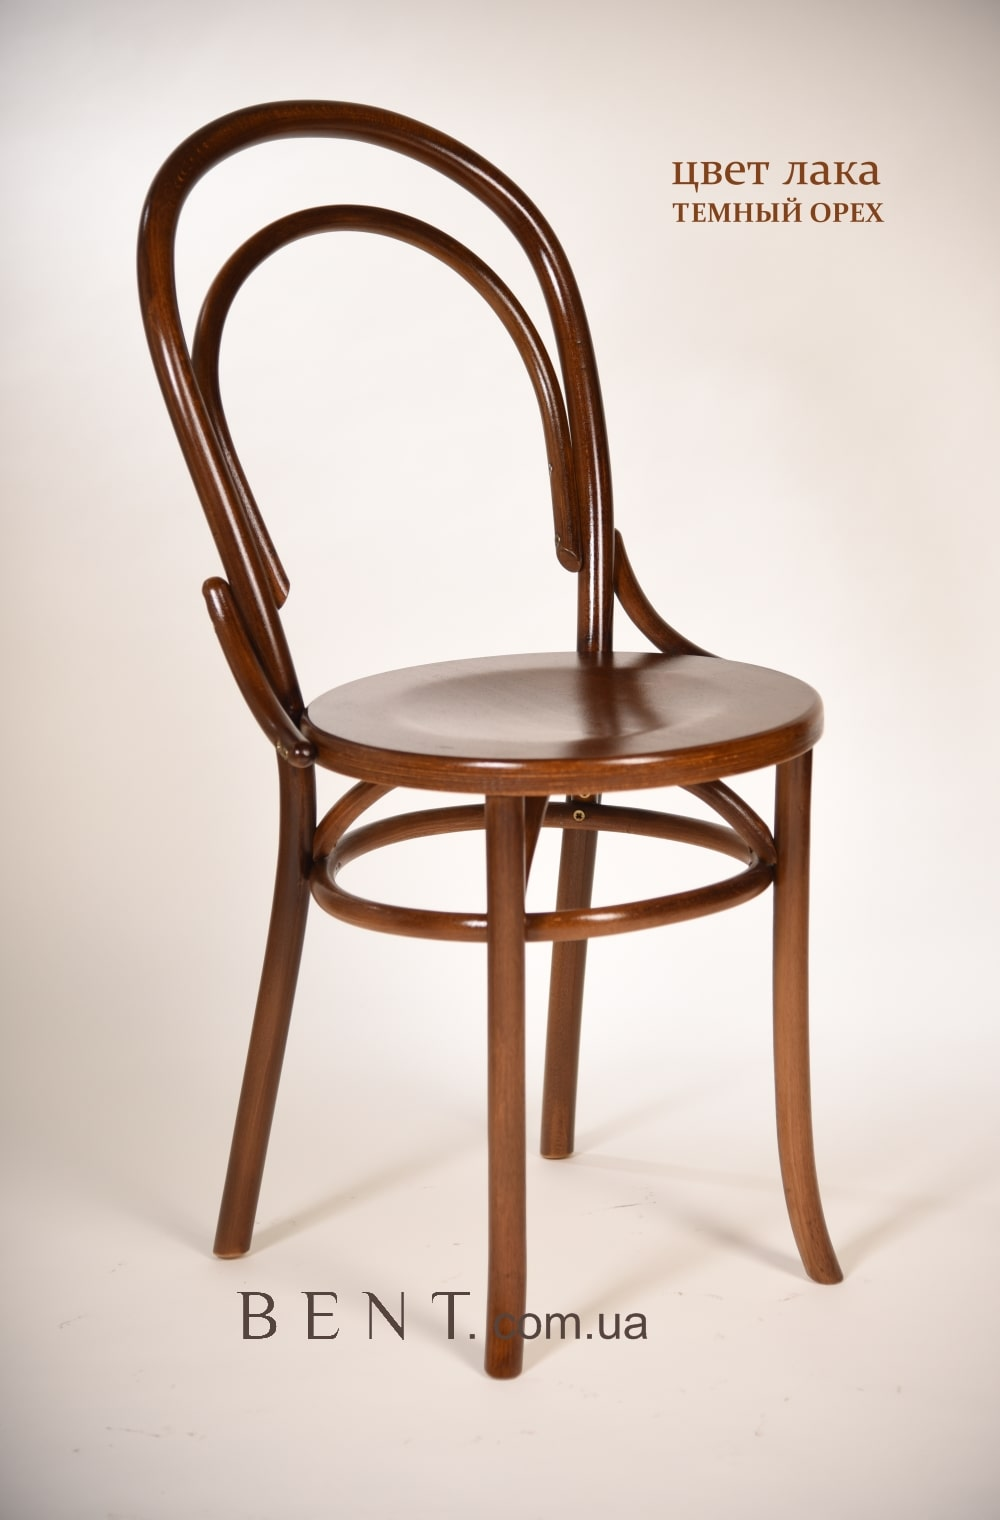 Chair BENT Bukovina brown best price